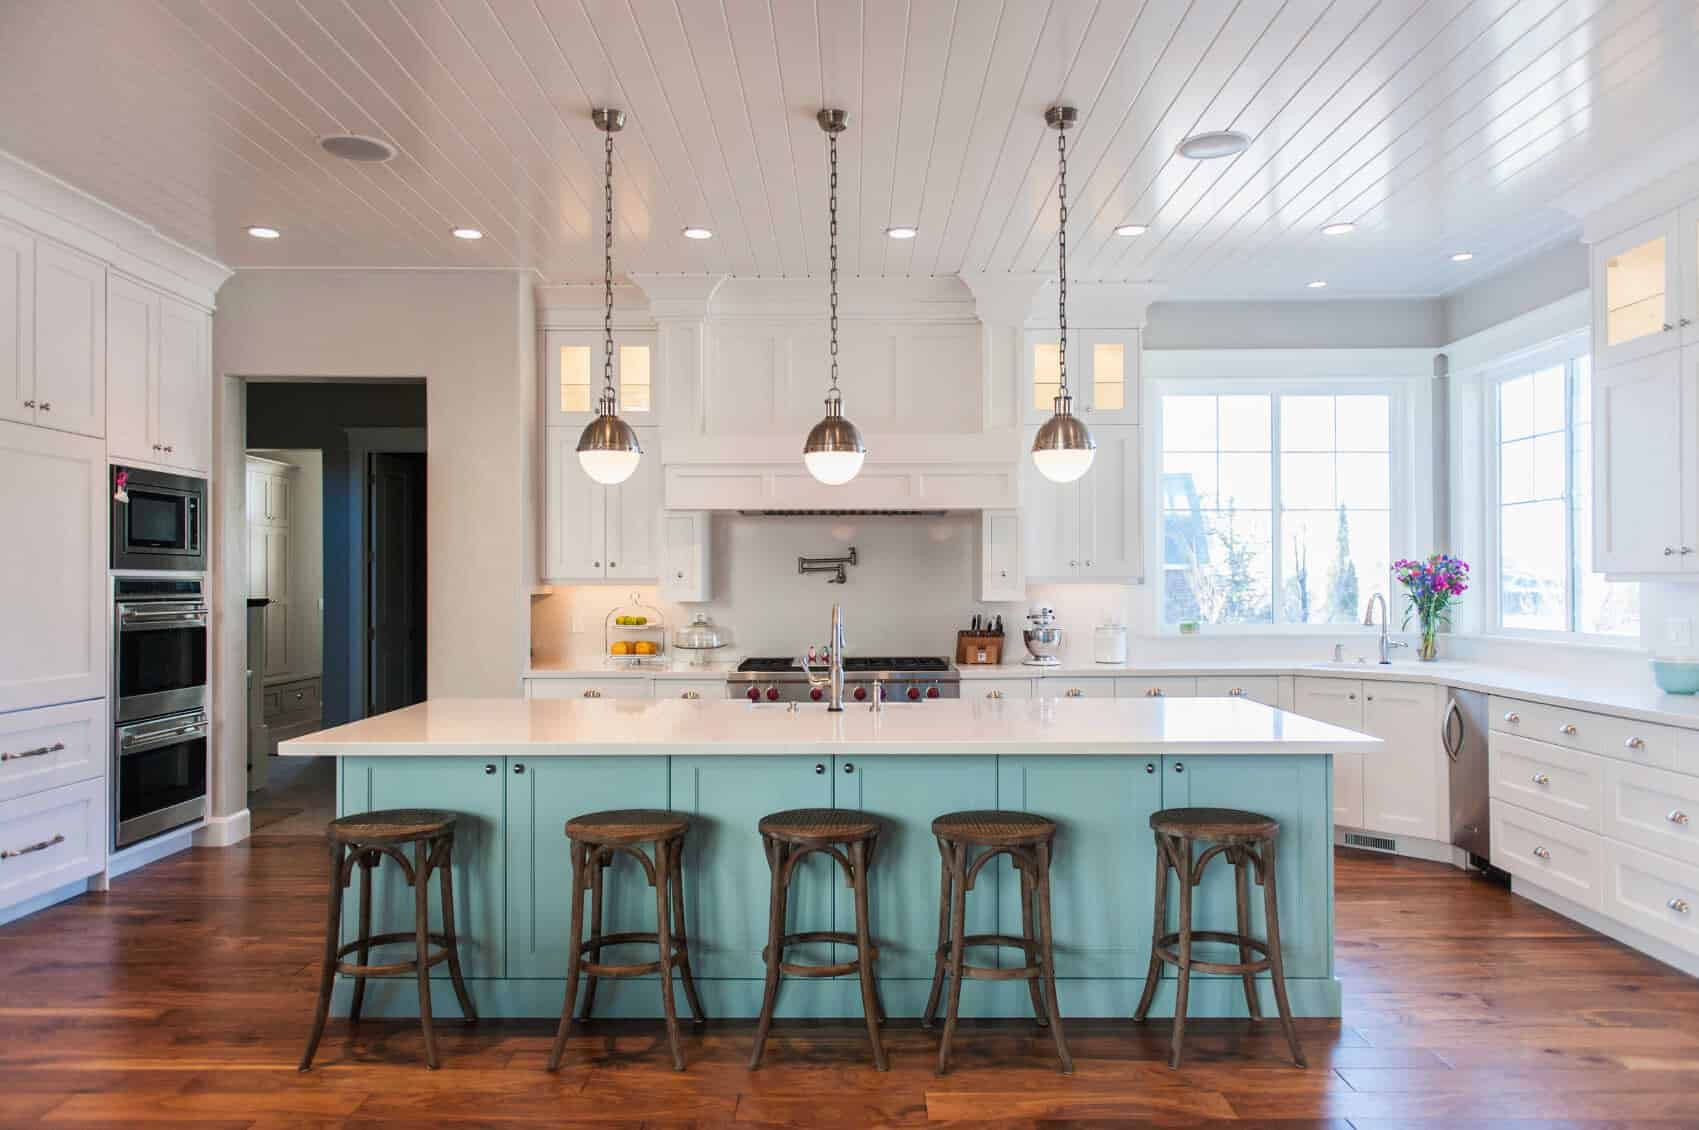 An aqua island bar lined with wooden bar stools adds a nice accent in this white kitchen with rich hardwood flooring and framed windows bringing plenty of natural light in. It includes a shiplap ceiling mounted with recessed lights and chrome pendants.